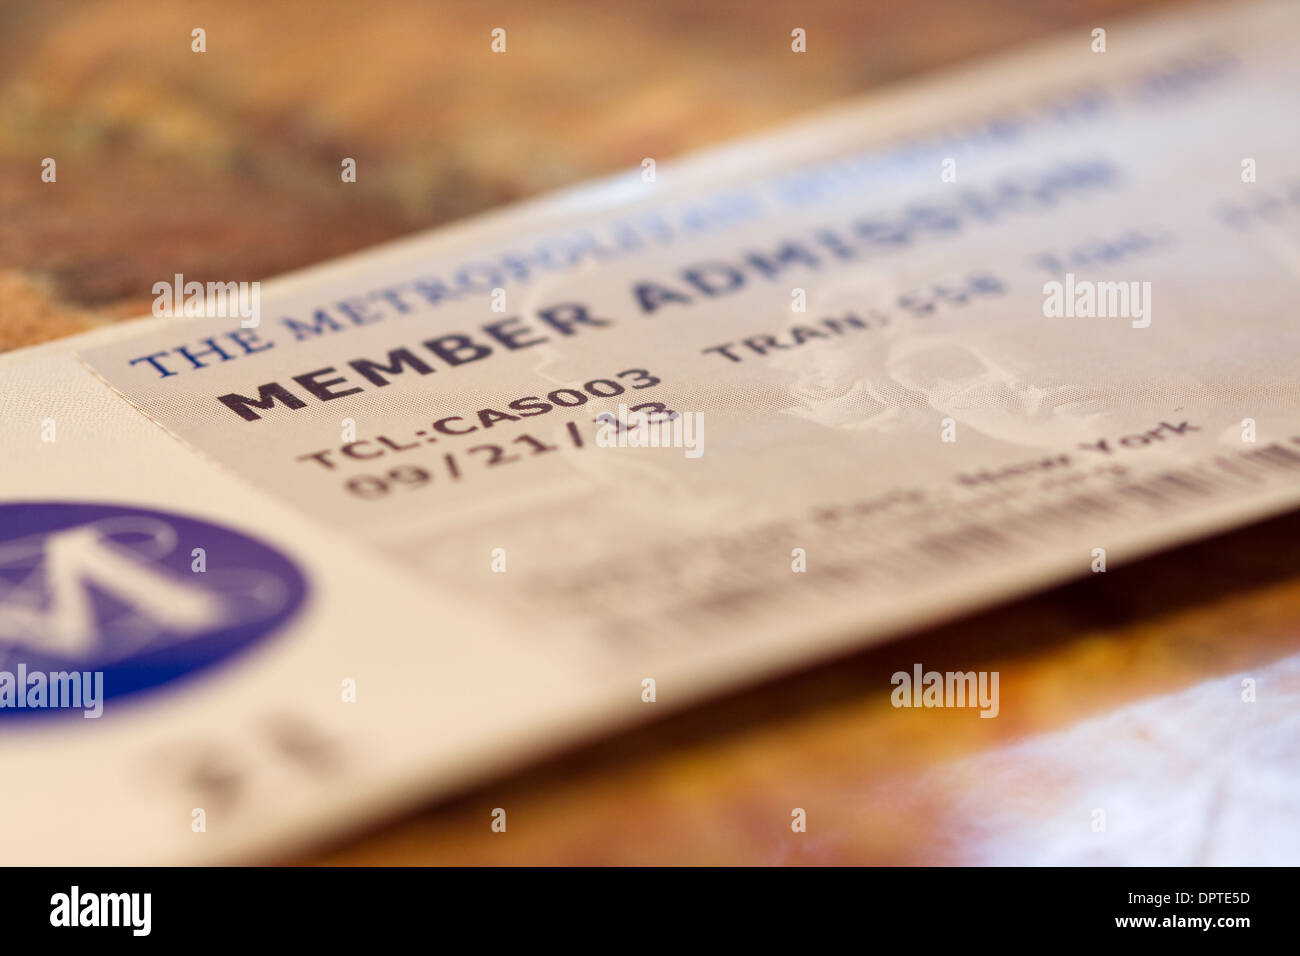 Member Admission Ticket to the Metropolitan Museum of Art in New York City - Stock Image